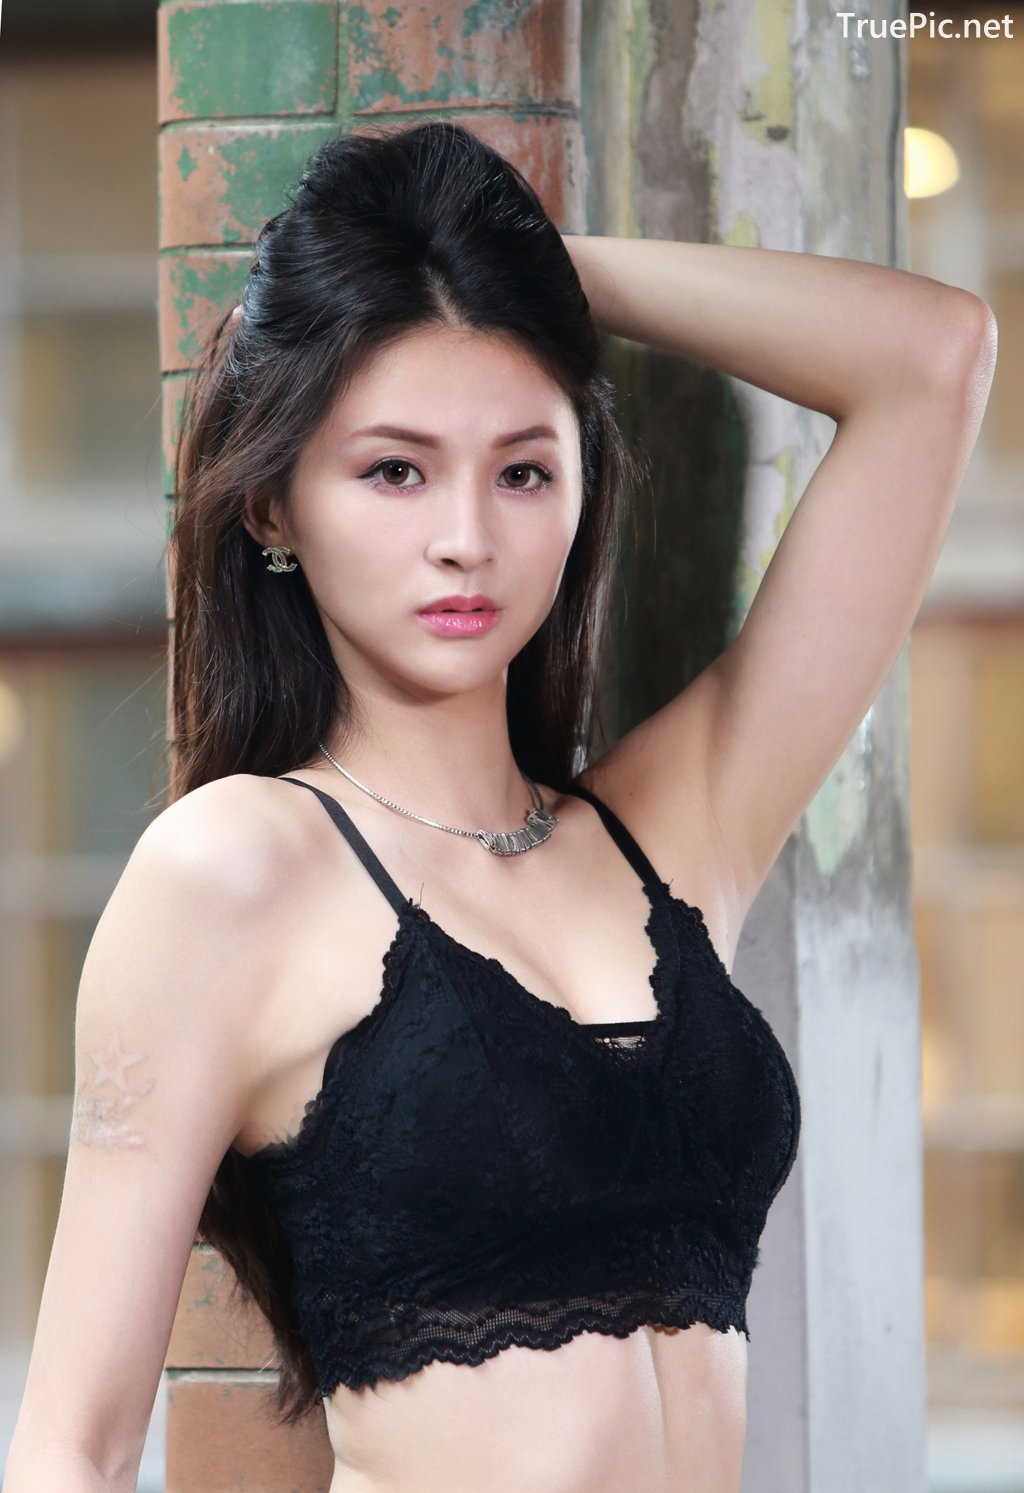 Image-Taiwanese-Beautiful-Long-Legs-Girl-雪岑Lola-Black-Sexy-Short-Pants-and-Crop-Top-Outfit-TruePic.net- Picture-24